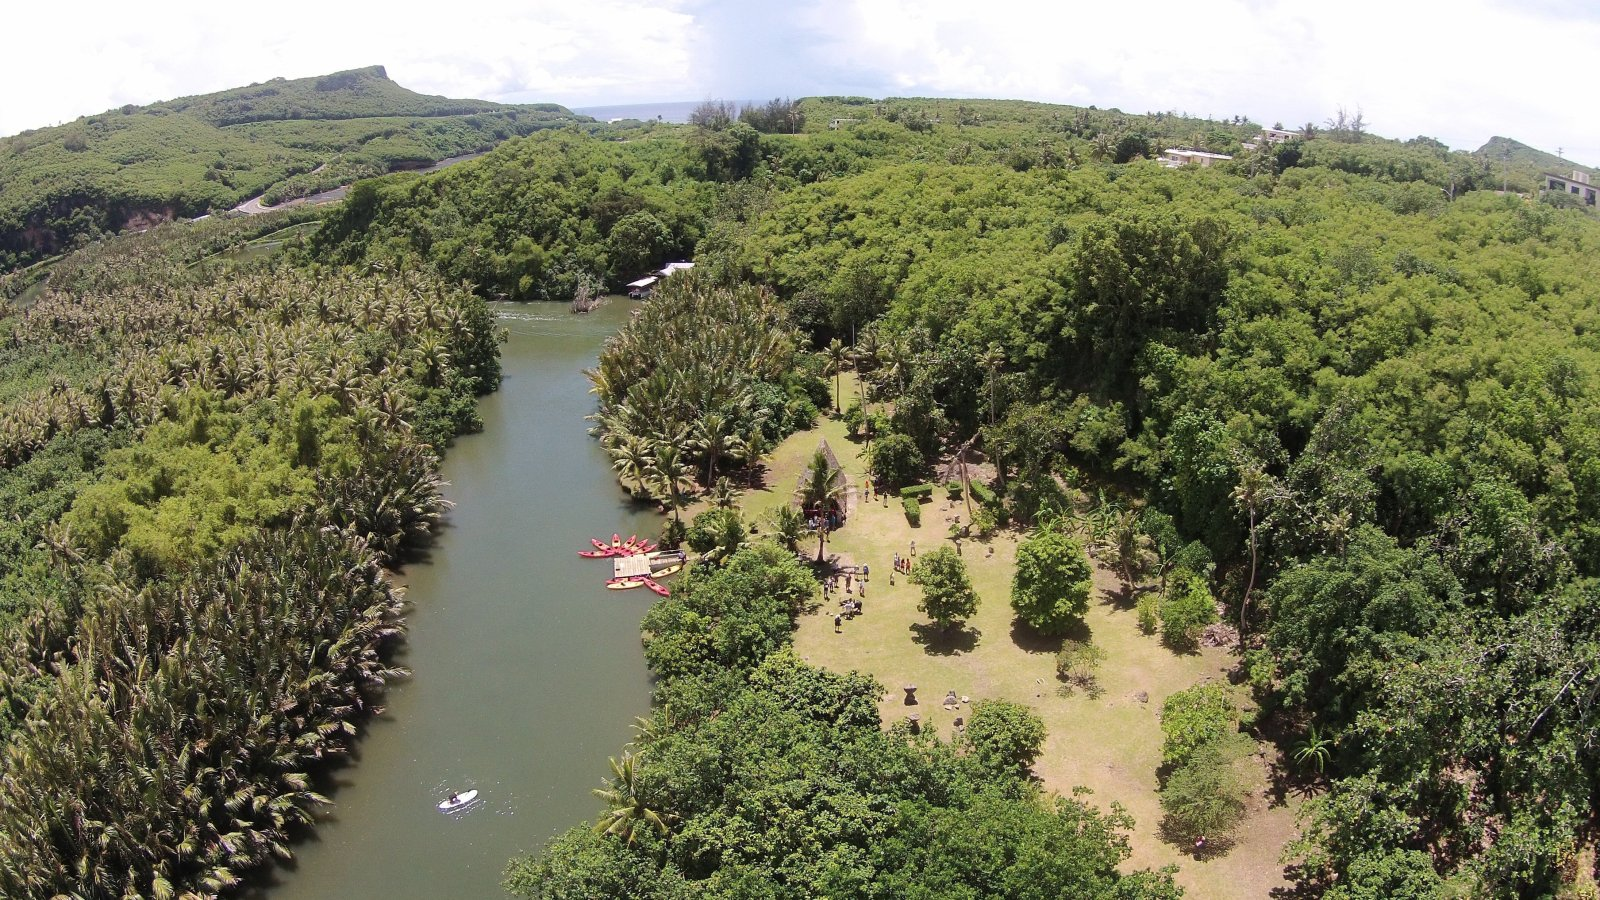 Valley of the Latte Adventure Park- Aerial photo of the Talofofo and Ugum Rivers, Kayakers, River Boats, Families, Locals, and Tourists enjoying the wonder of the Valley of the Latte.